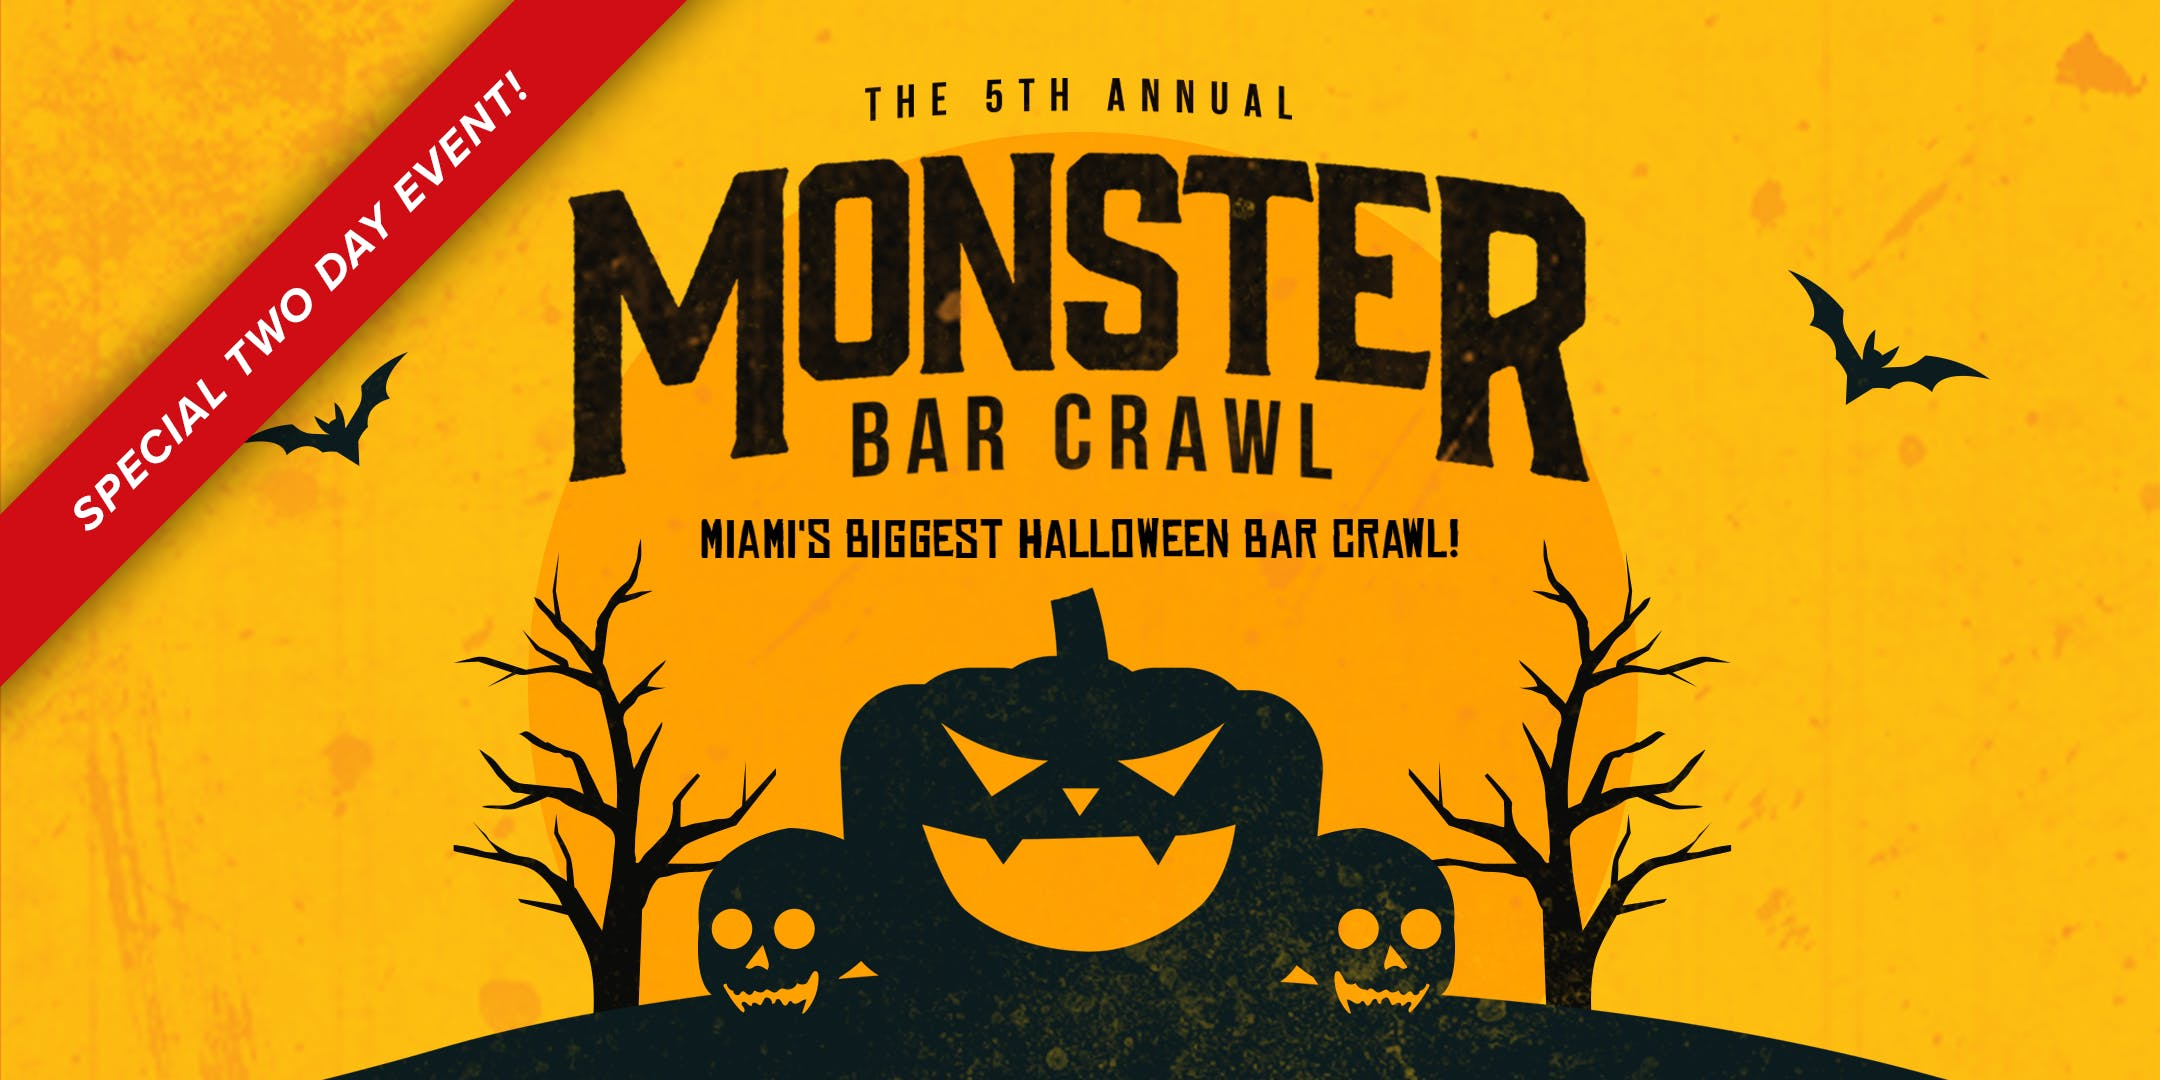 Halloween October 31st 2020 Miami Bar Crawl 5th Annual Monster Bar Crawl in Miami (Thursday, October 31st